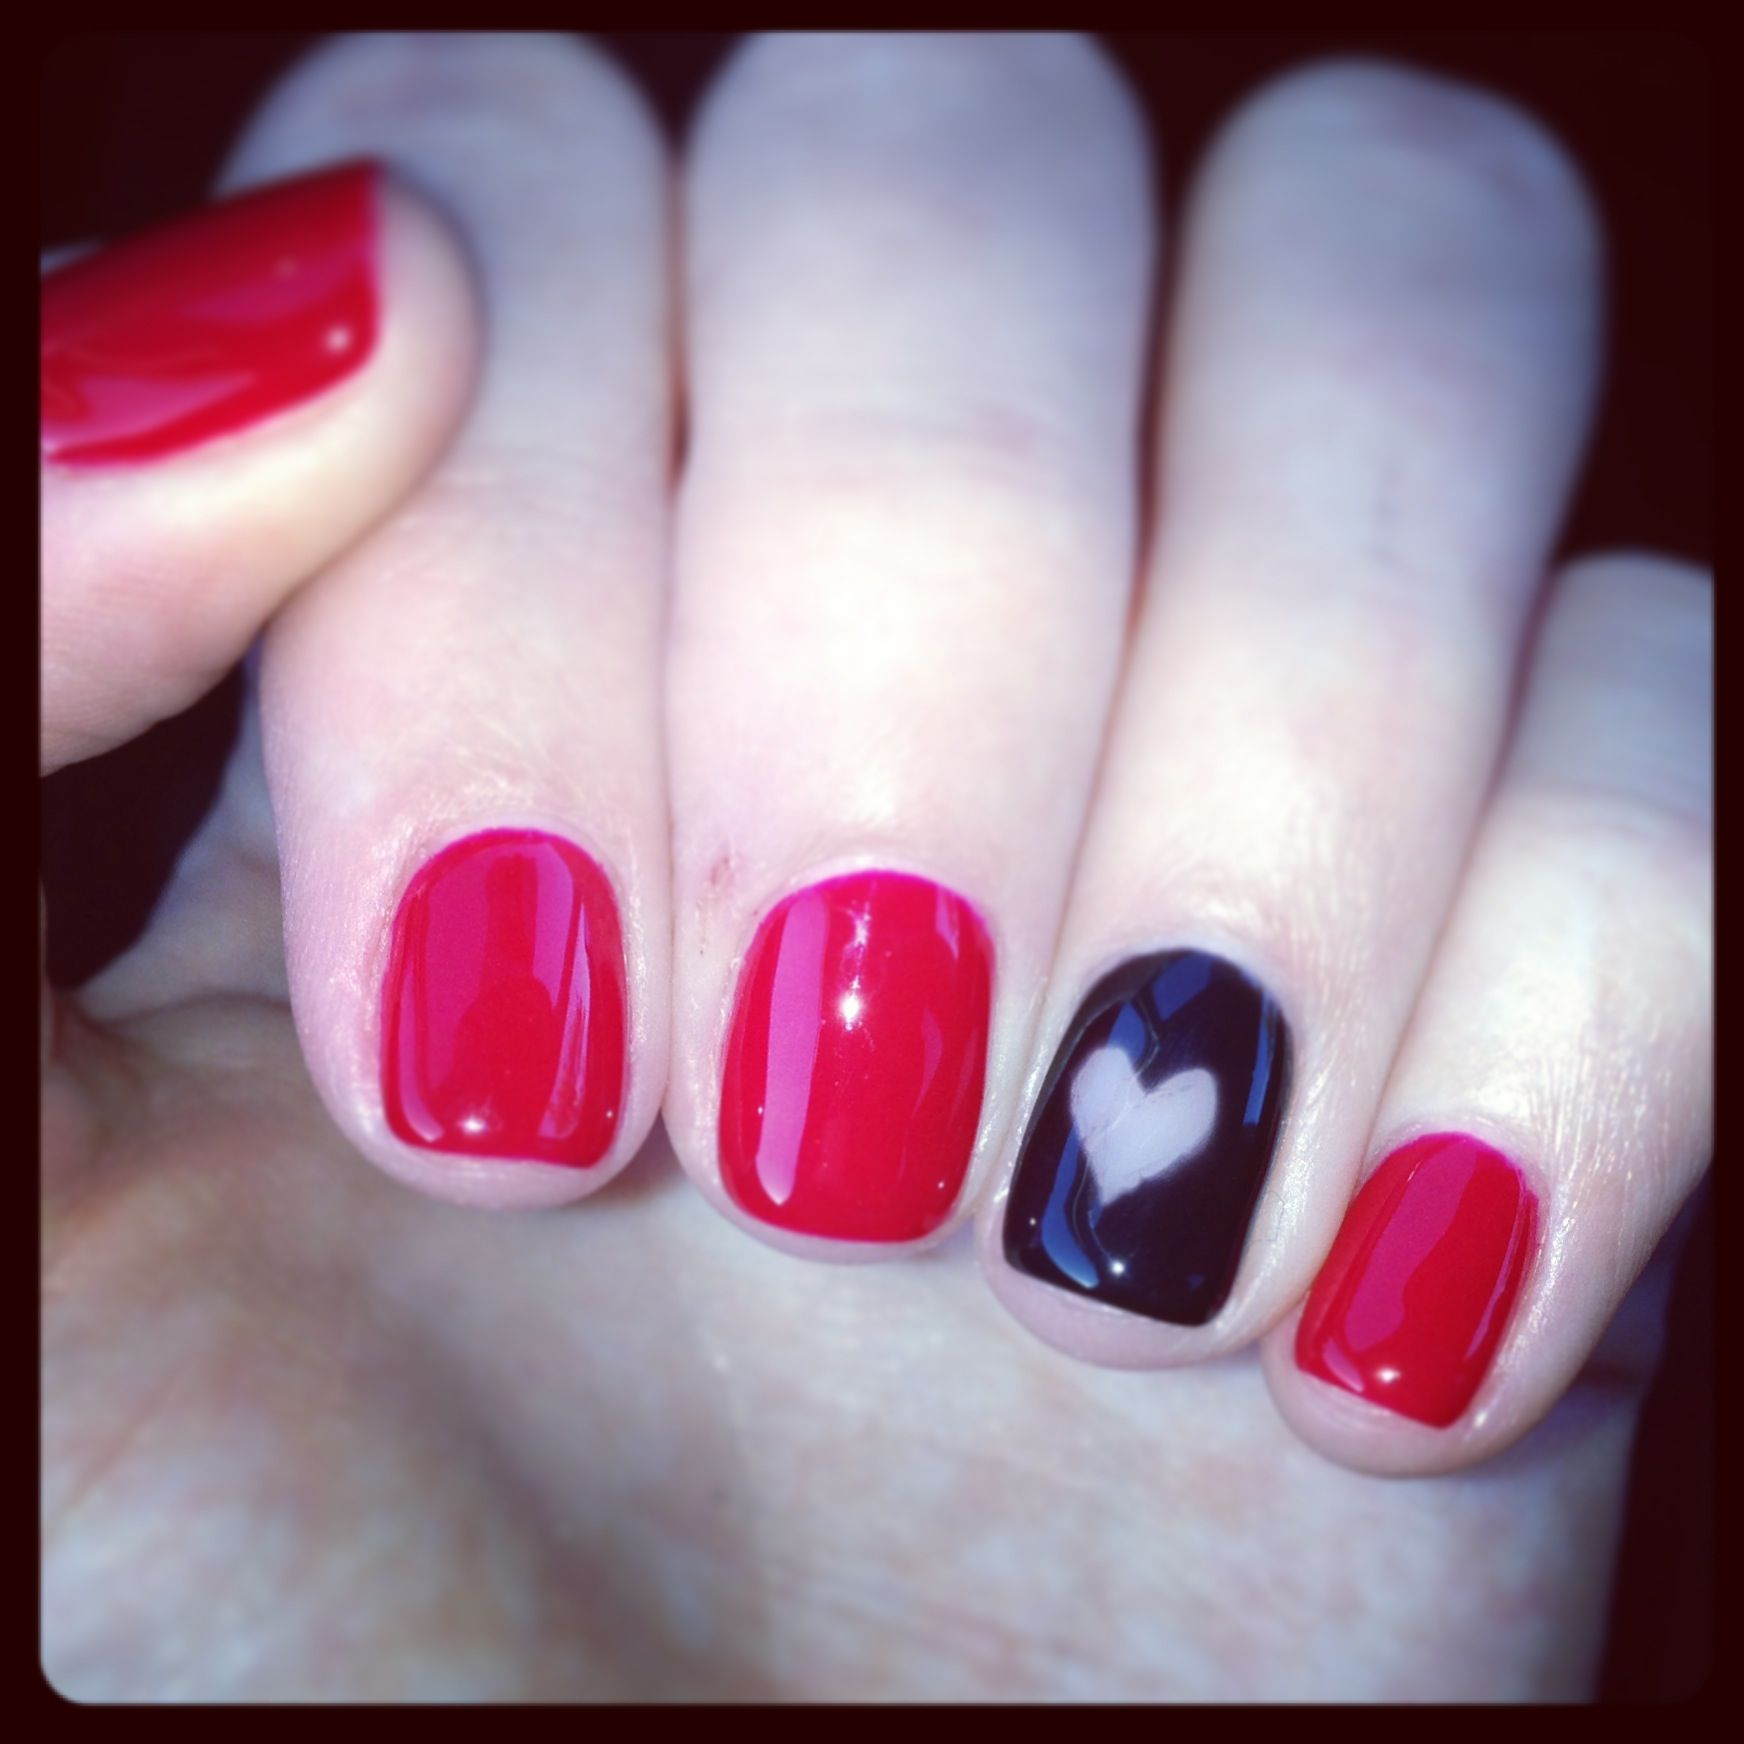 Queen of hearts ❤ #nails | nailed it. | Pinterest | Queens ...